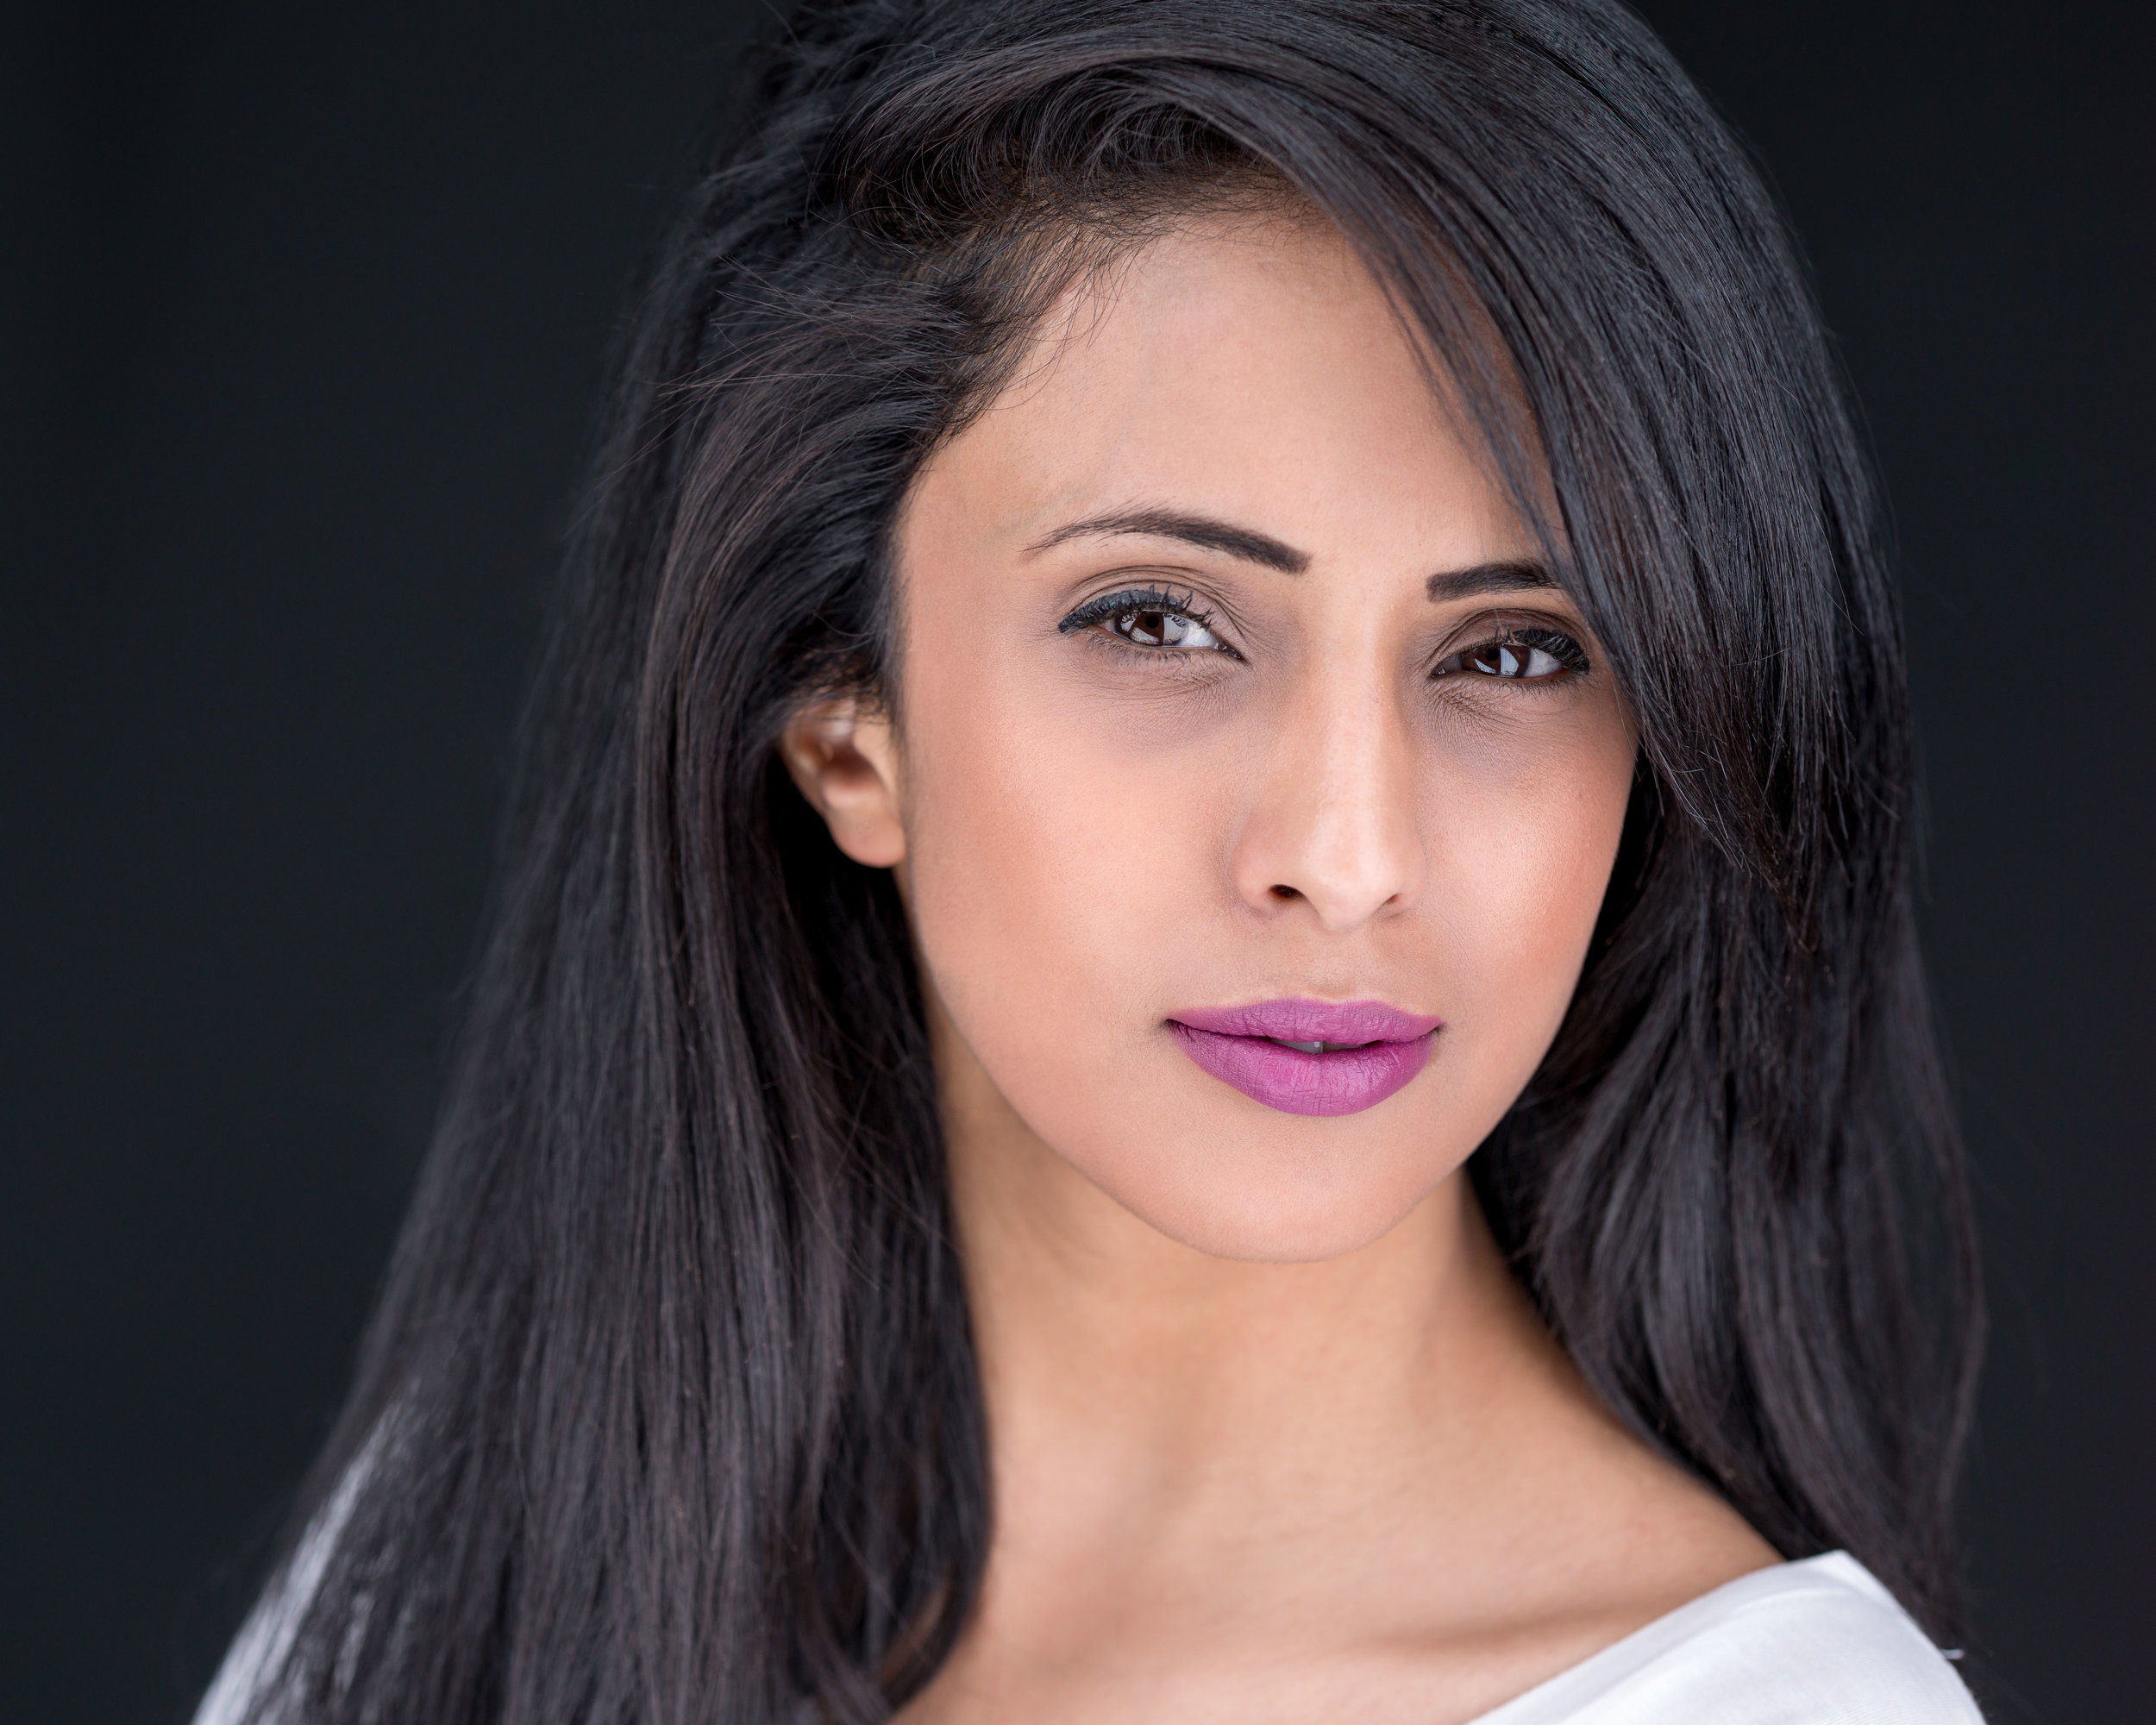 Headshot_Photography_by_Karaminder_2014112200116.jpg